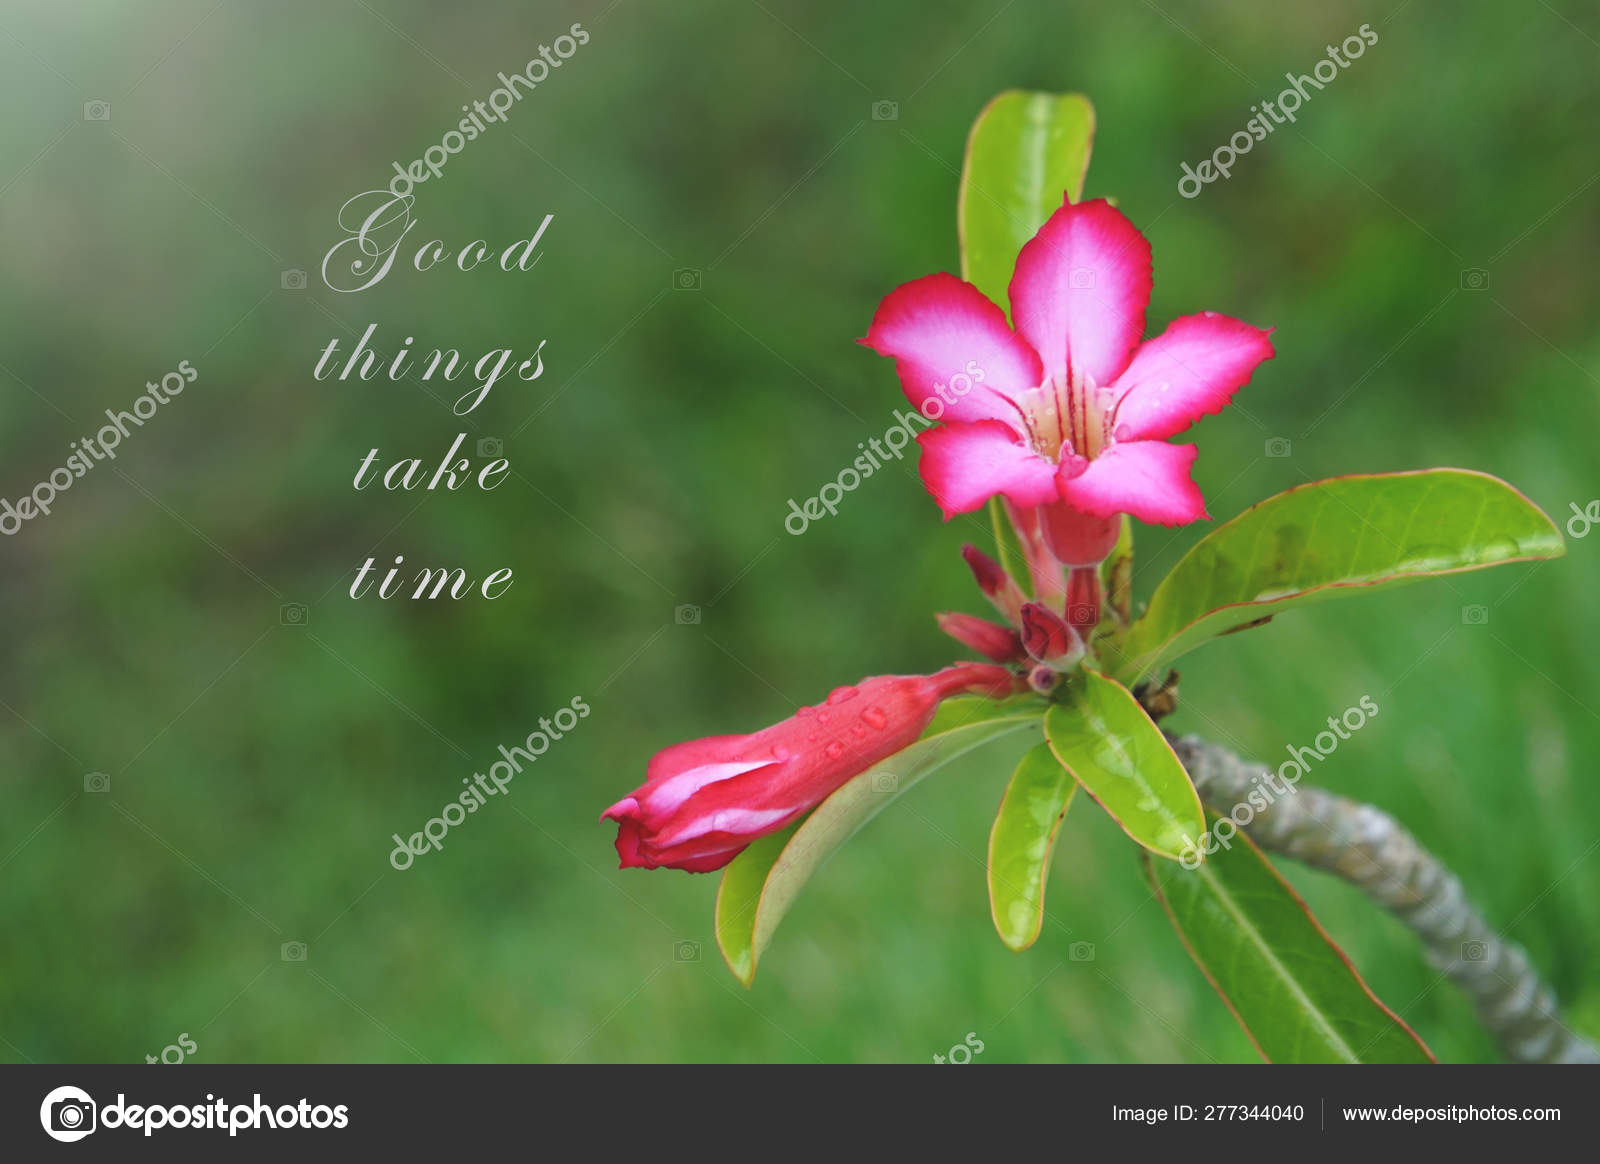 Motivational Quotes Good Things Take Time Blurry Pink Flowers Green Stock Photo C Dinmy73 277344040